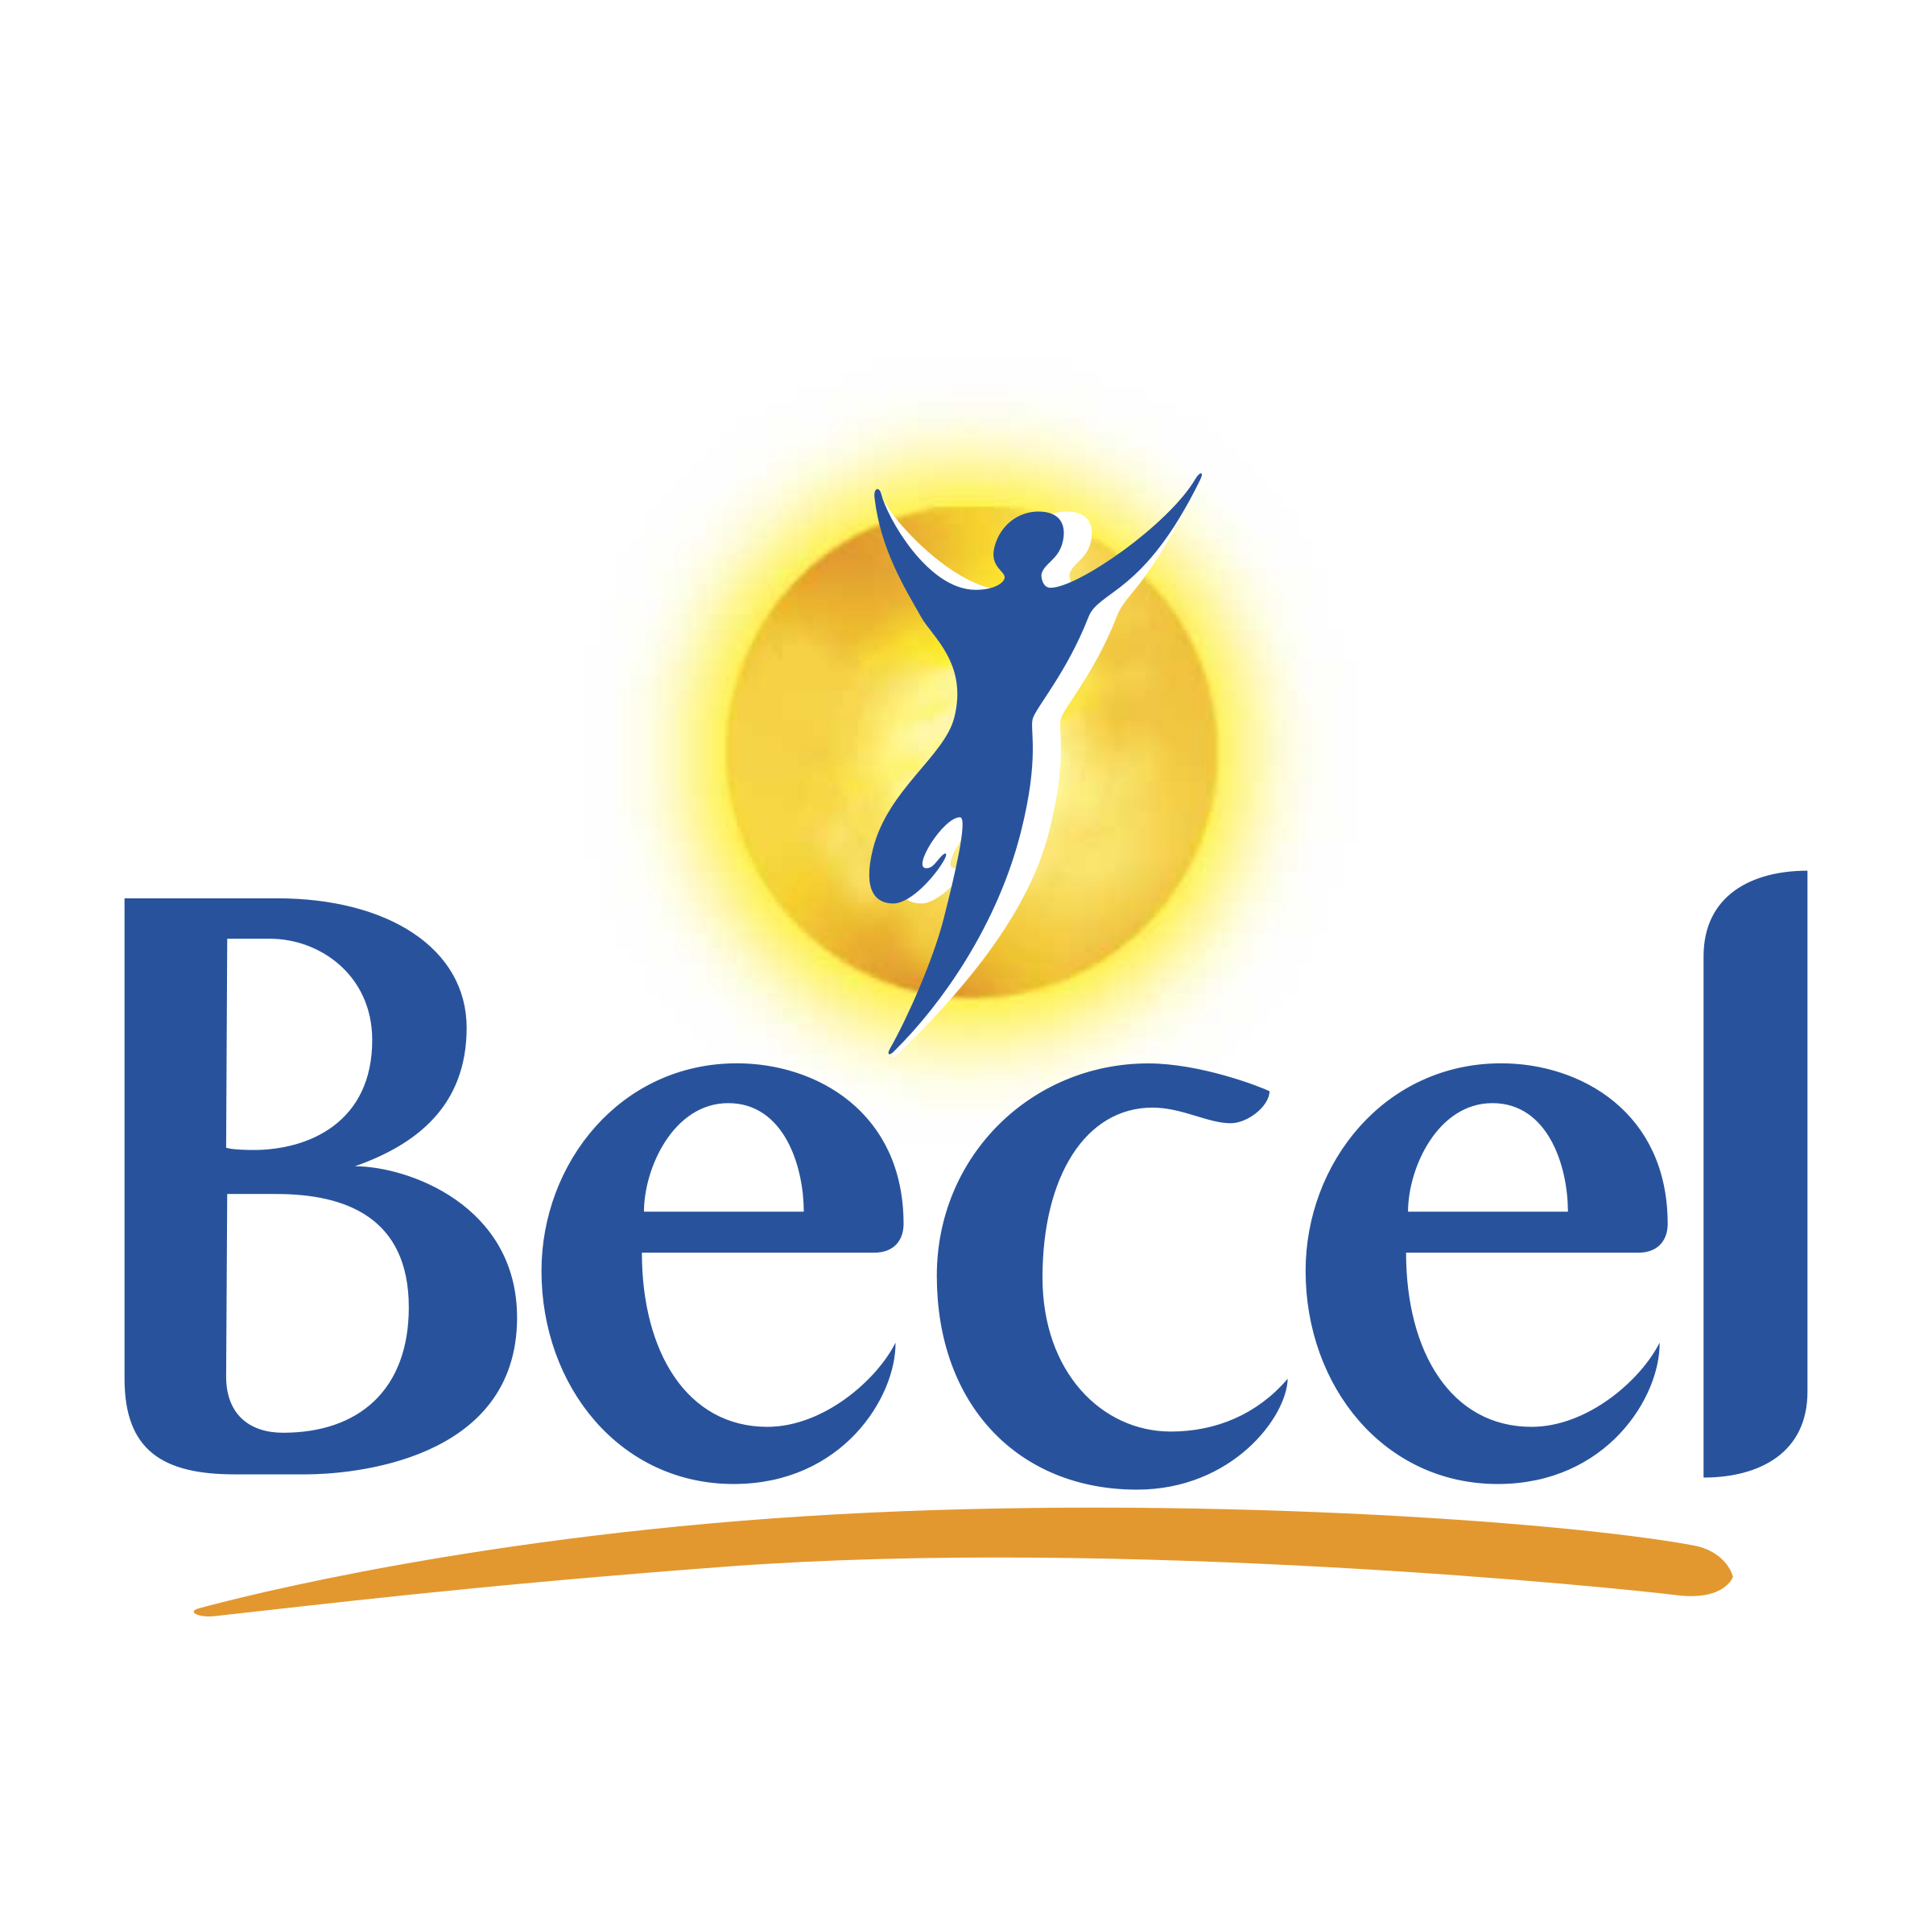 Becel Logo PNG Transparent & SVG Vector.